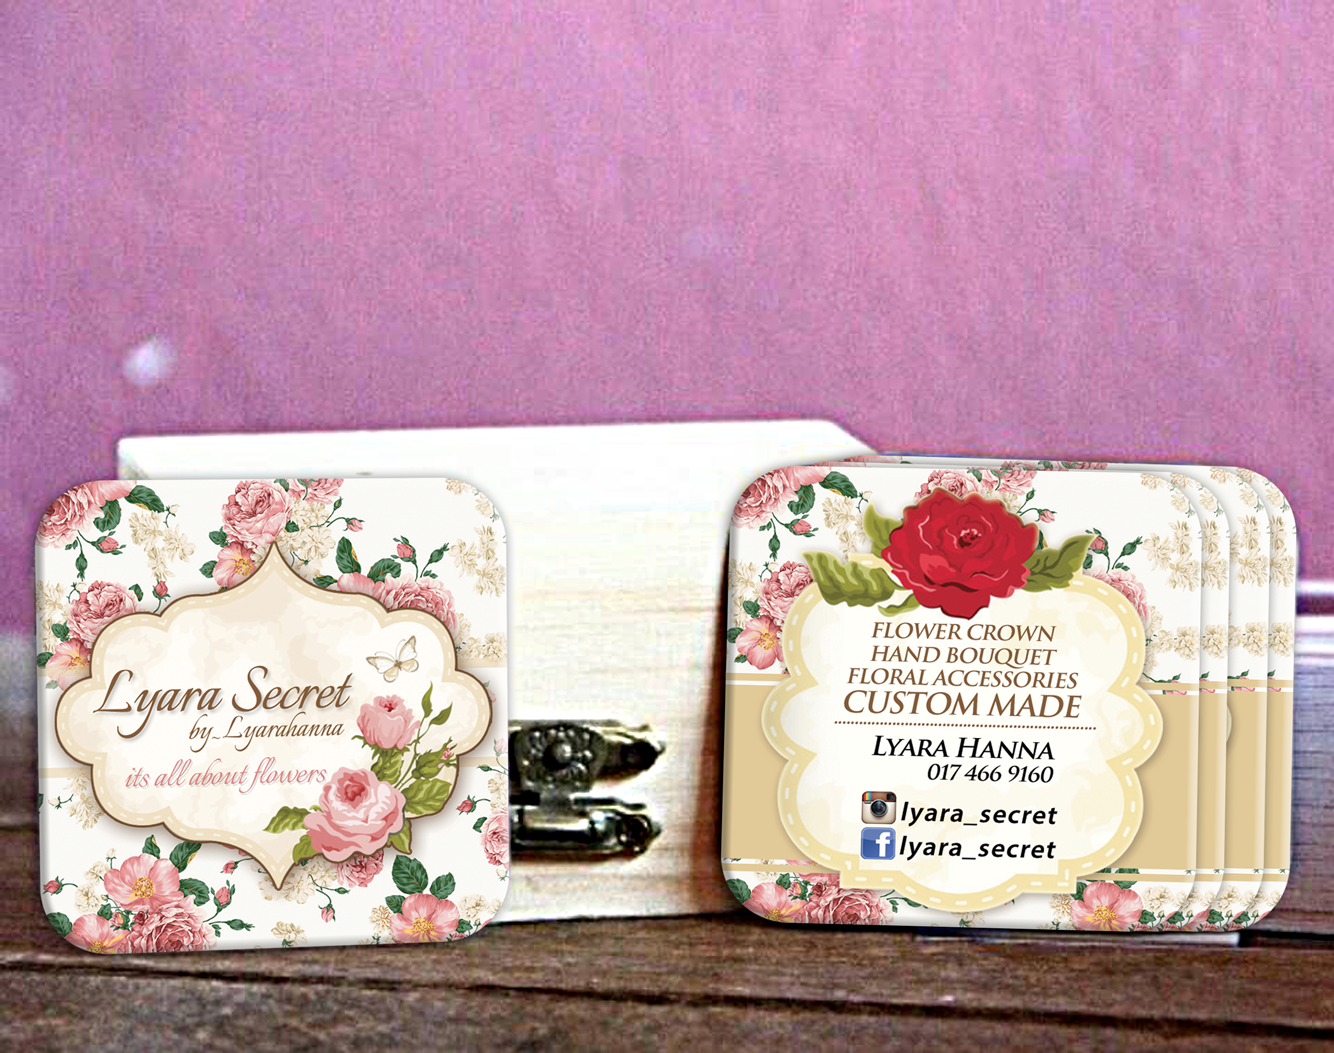 Custom size business card for lyarahanna flower crown custom size business card for lyarahanna flower crown colourmoves